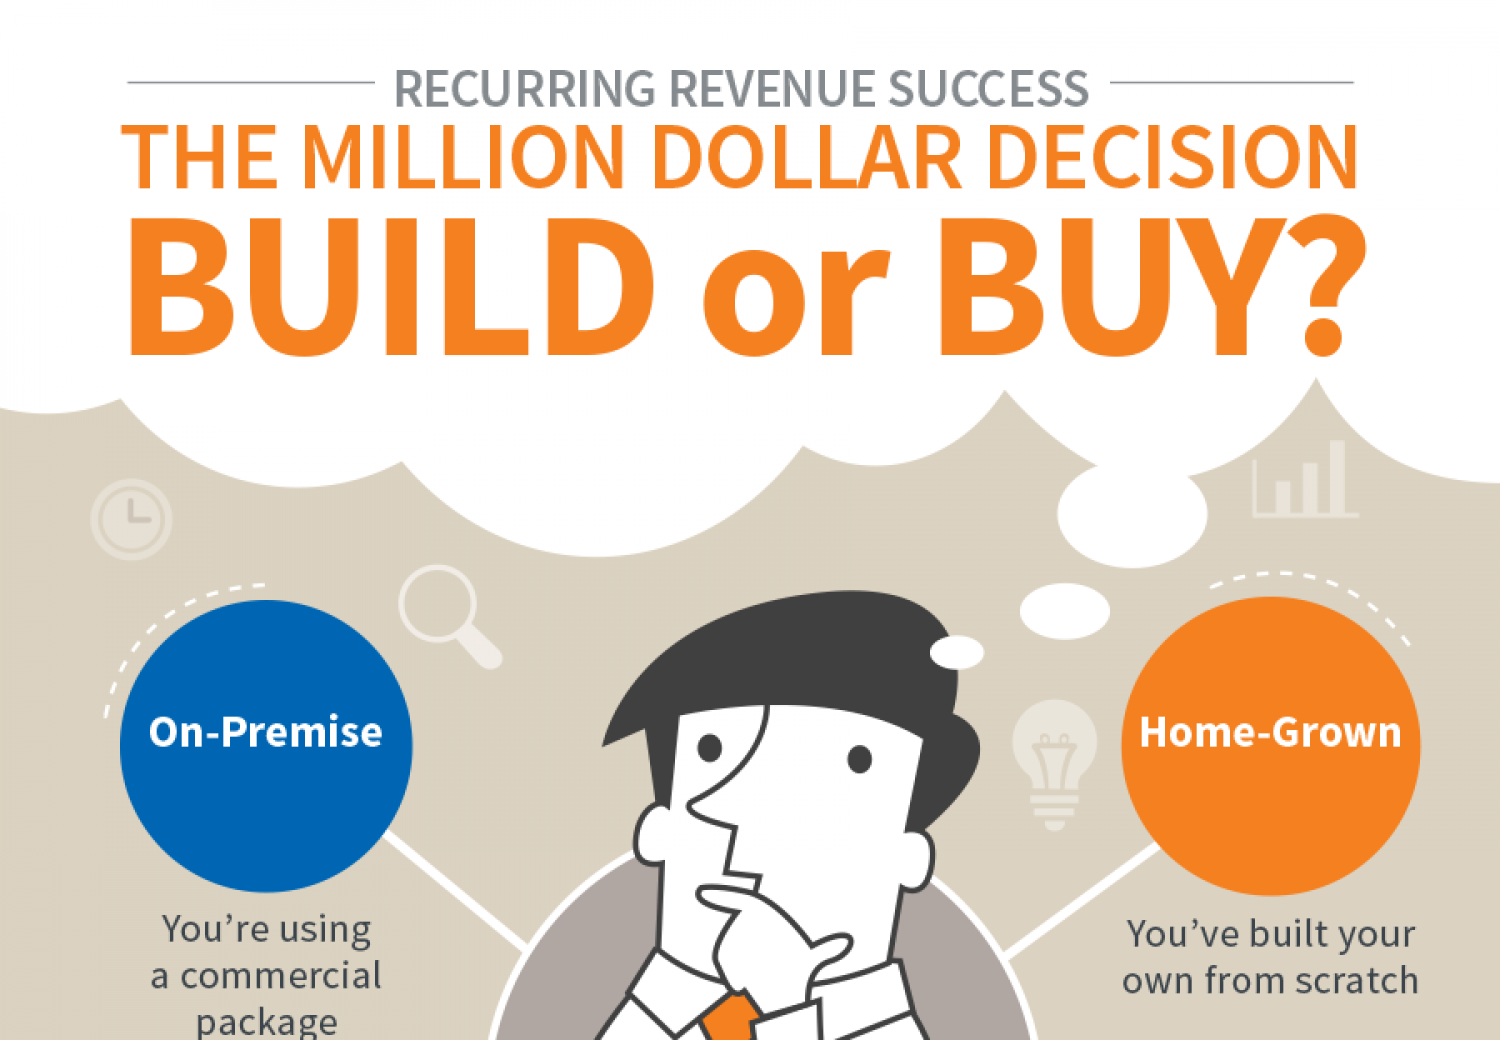 Recurring Revenue Success - The Million Dollar Decision: Build or Buy? Infographic